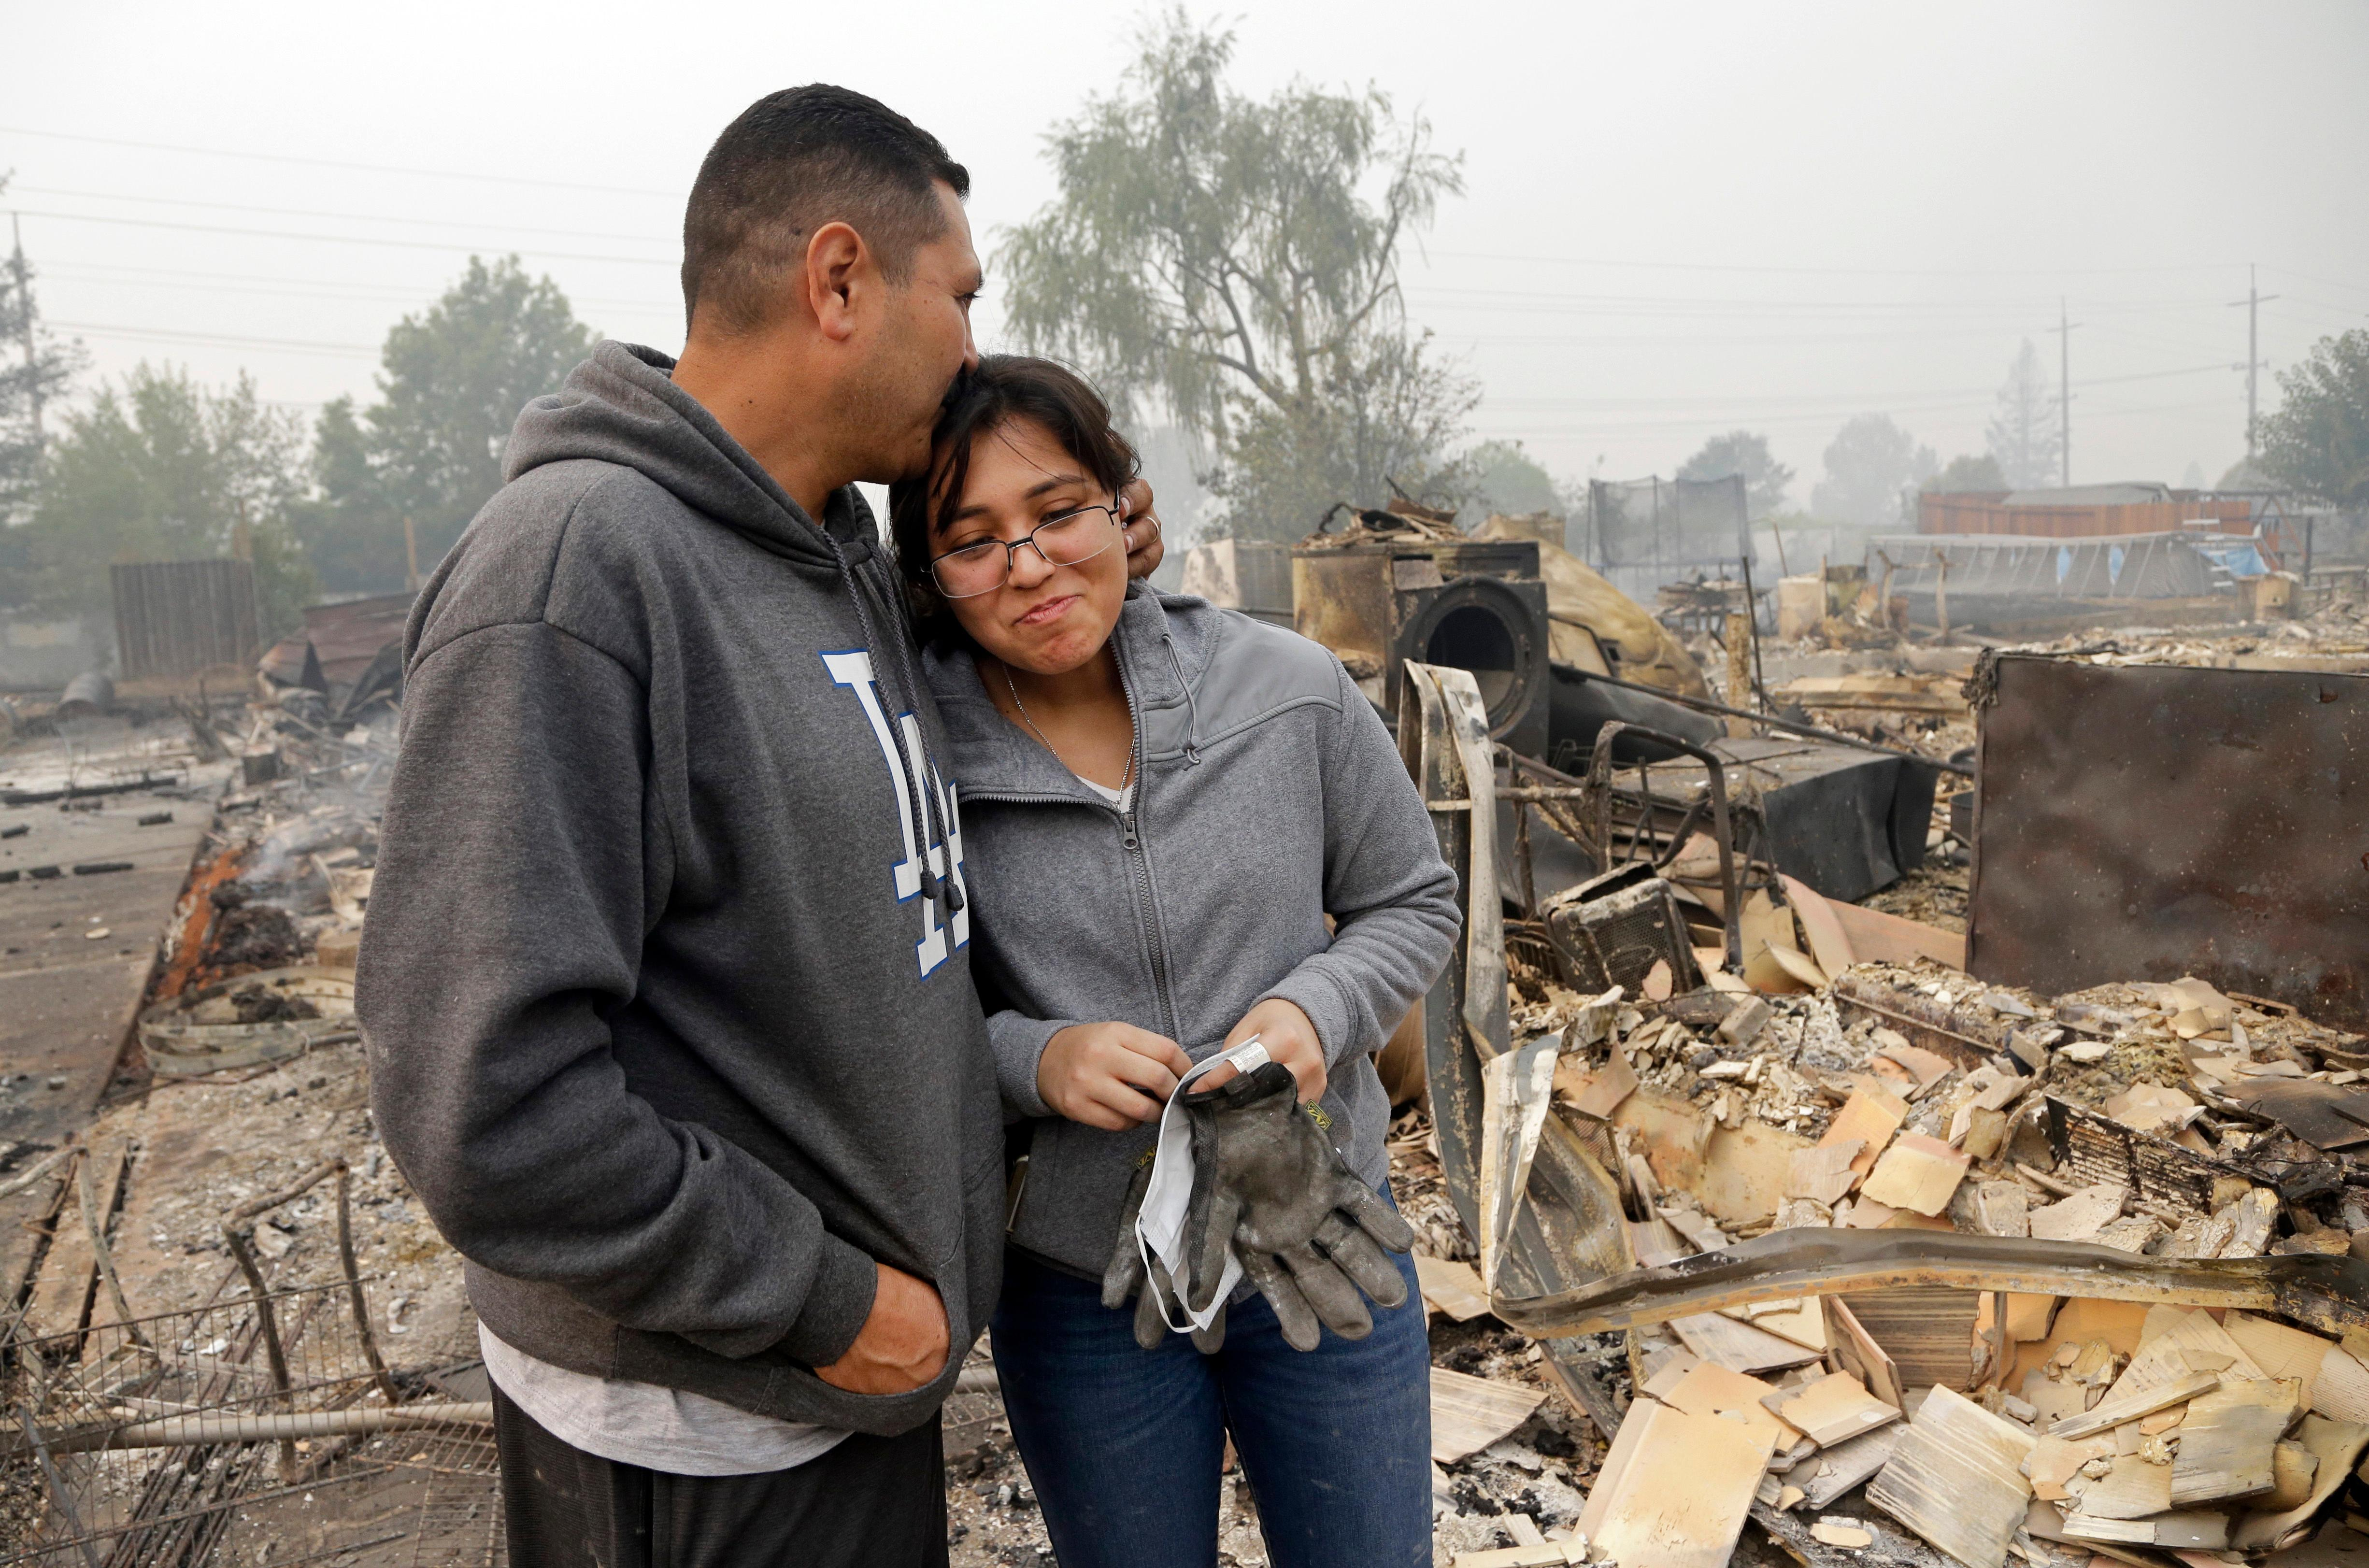 Jose Garnica, left, kisses his daughter Leslie Garnica in front of their home that was destroyed in the Coffey Park area of Santa Rosa, Calif., on Tuesday, Oct. 10, 2017. An onslaught of wildfires across a wide swath of Northern California broke out almost simultaneously then grew exponentially, swallowing up properties from wineries to trailer parks and tearing through both tiny rural towns and urban subdivisions. (AP Photo/Ben Margot)